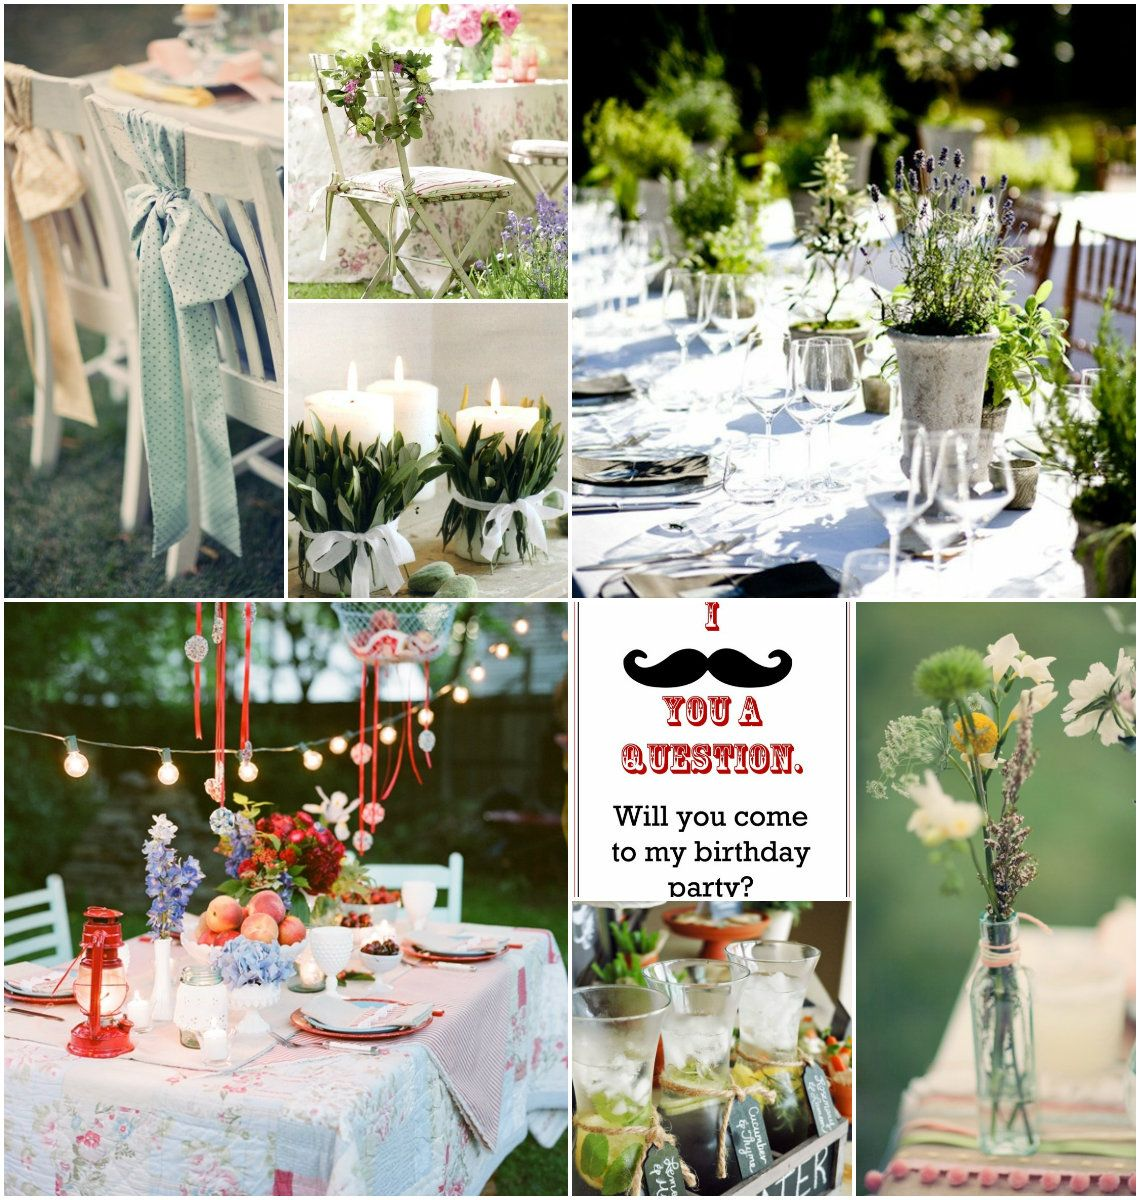 Garden Party Ideas Pinterest elegant oregon wine country wedding Village Garden Theme Fantastic 18th Birthday Party Ideas